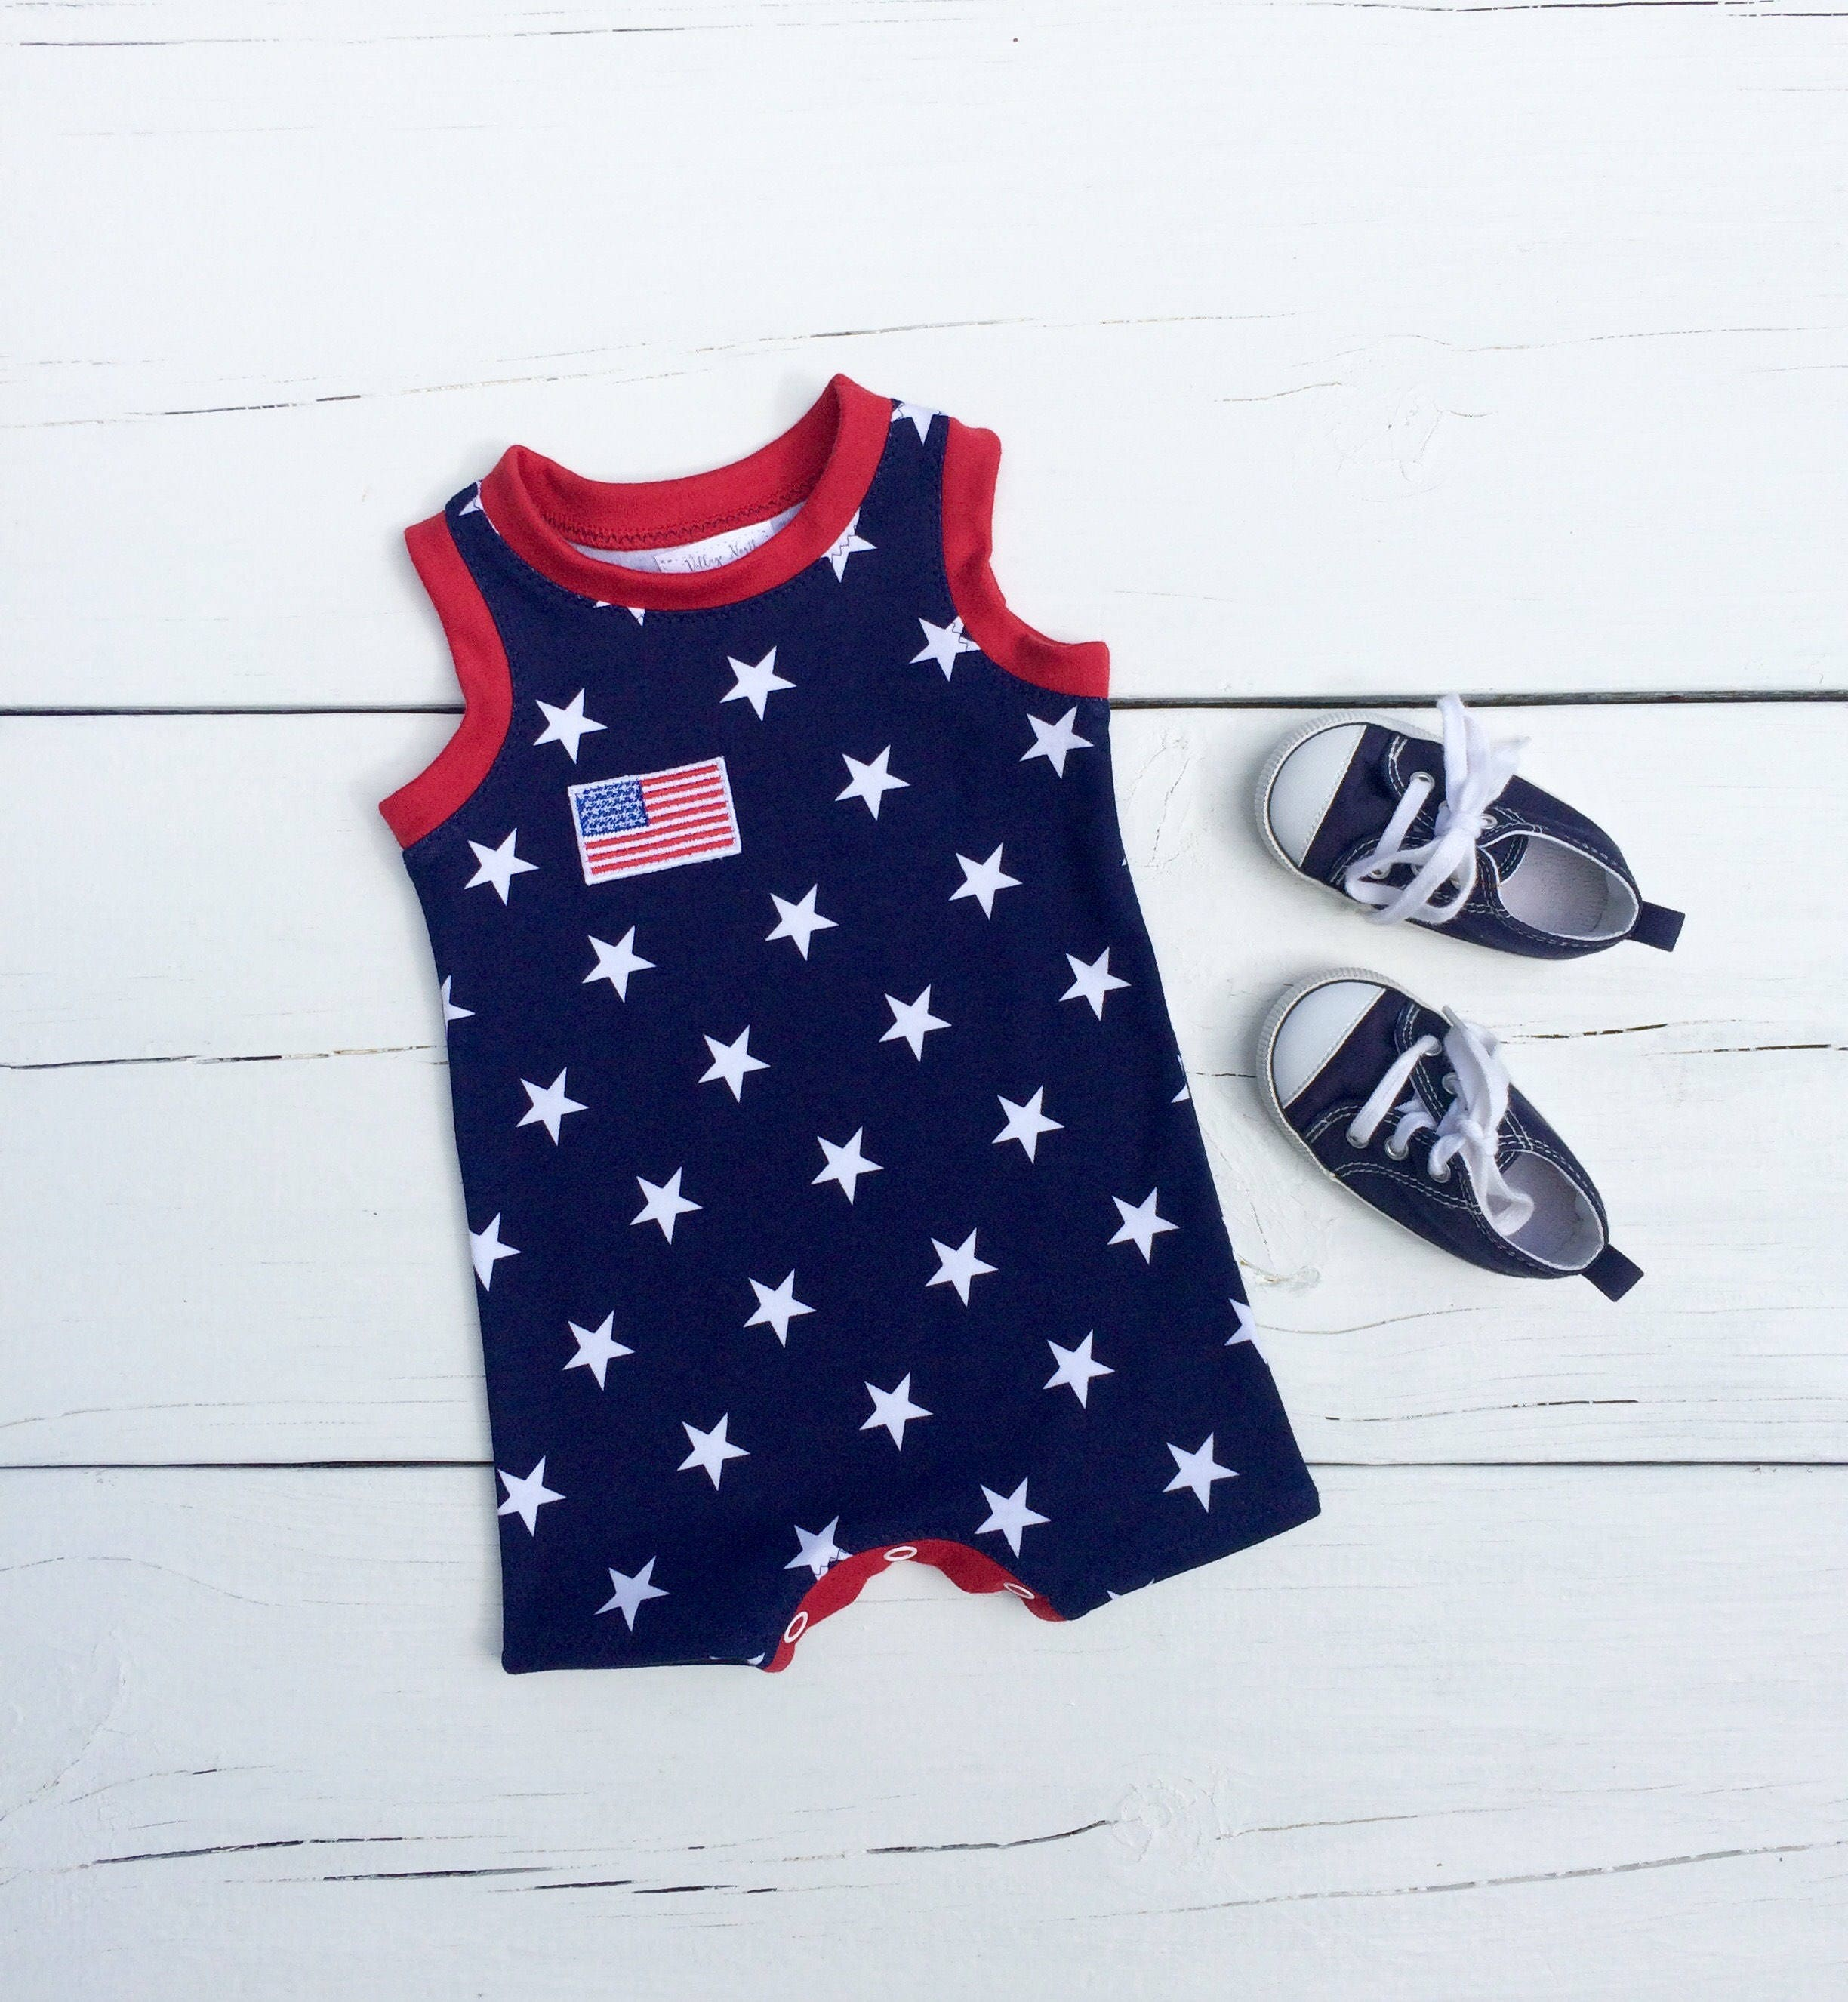 July 4th Baby Romper American Flag Romper Stars Baby Outfit Red